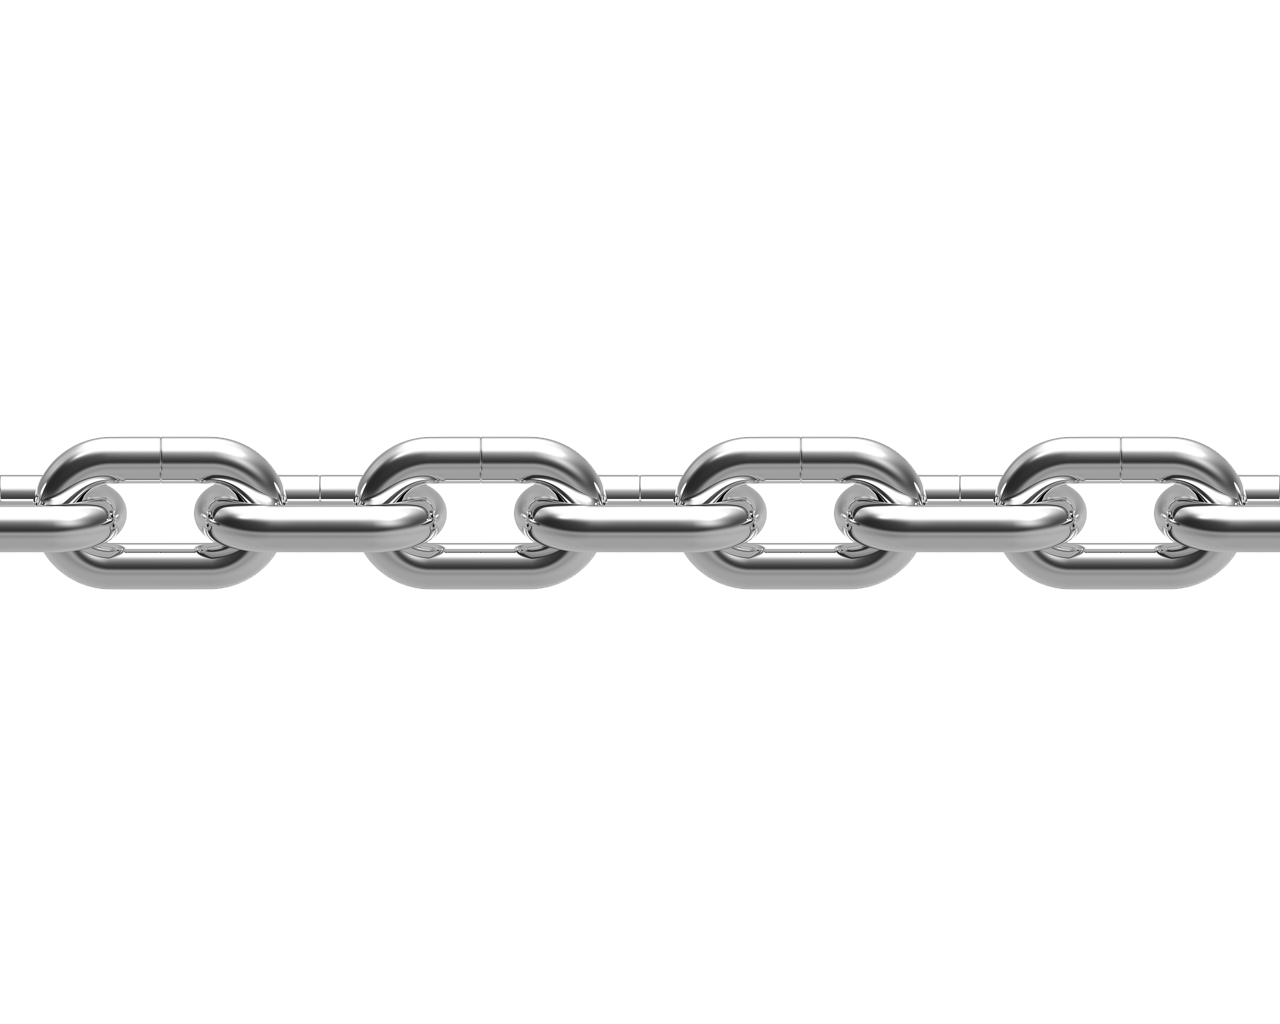 Single line png stickpng. Chain clipart transparent background